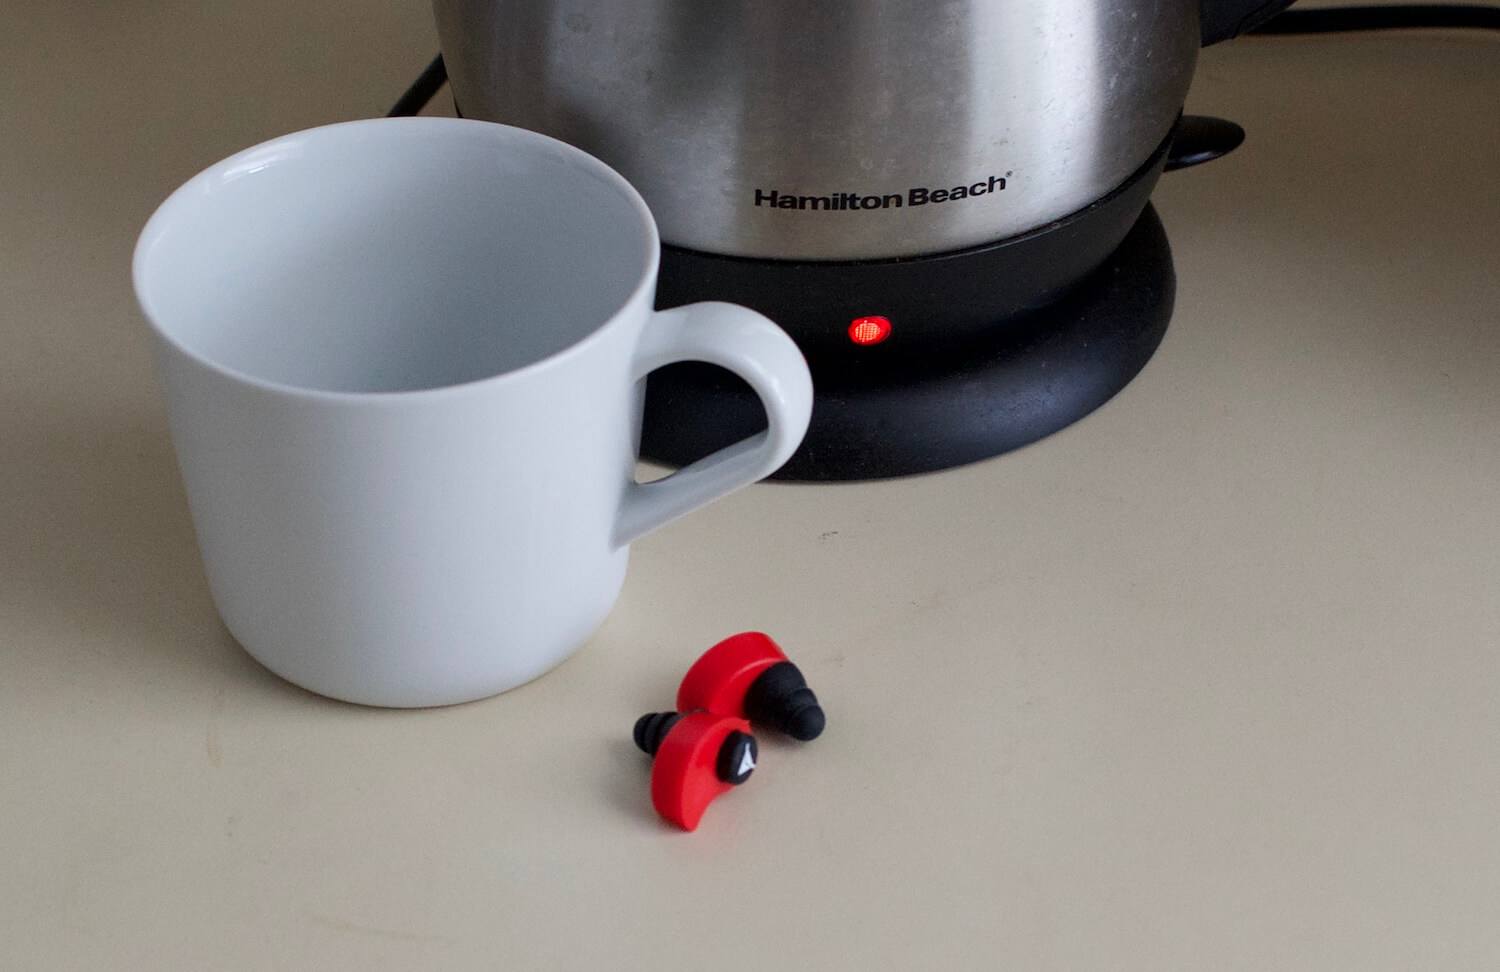 Boiling water to heat the earplugs.